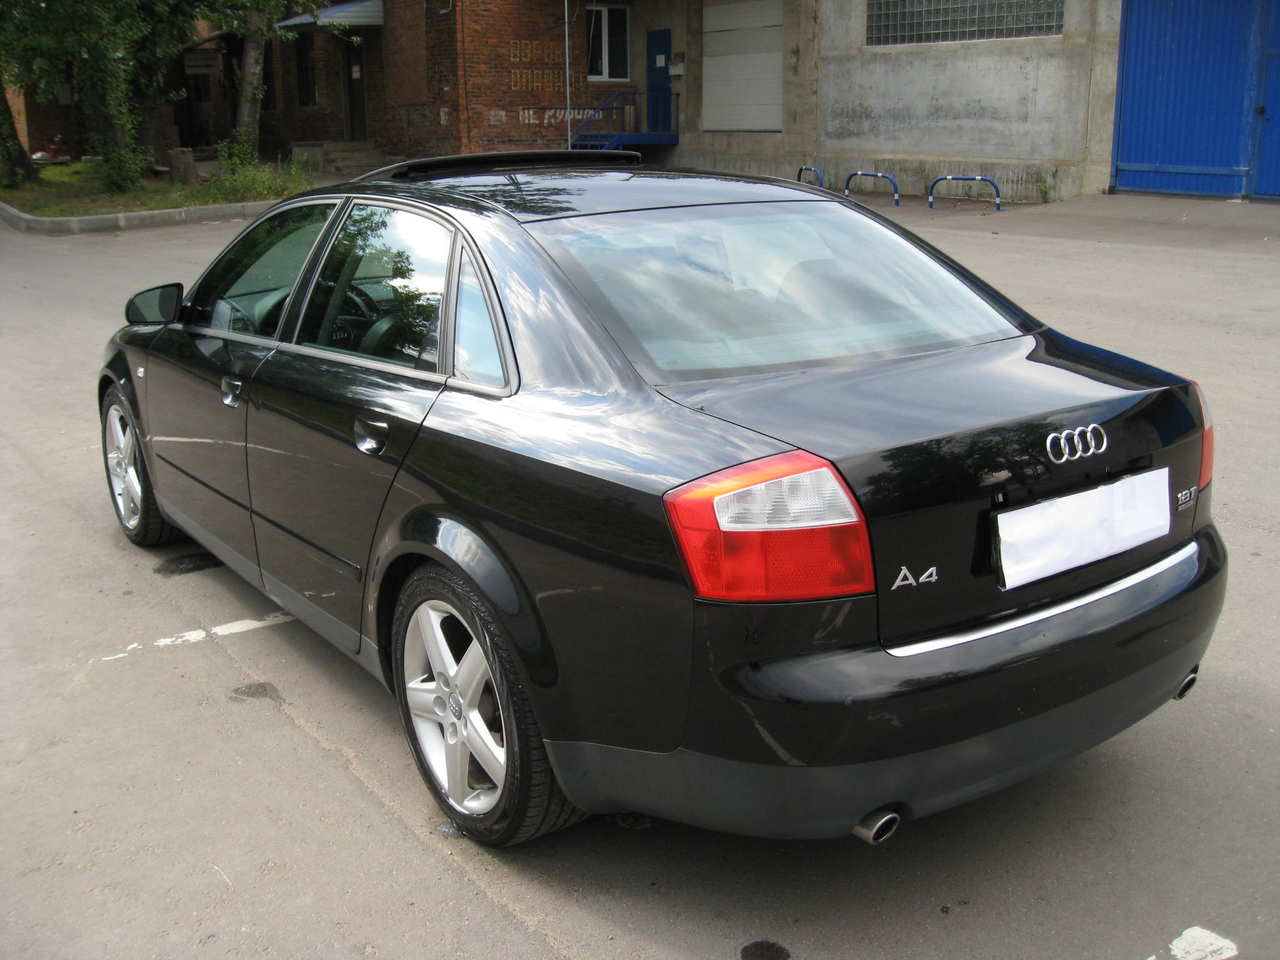 2002 Audi A4 Photos 1 8 Gasoline Automatic For Sale